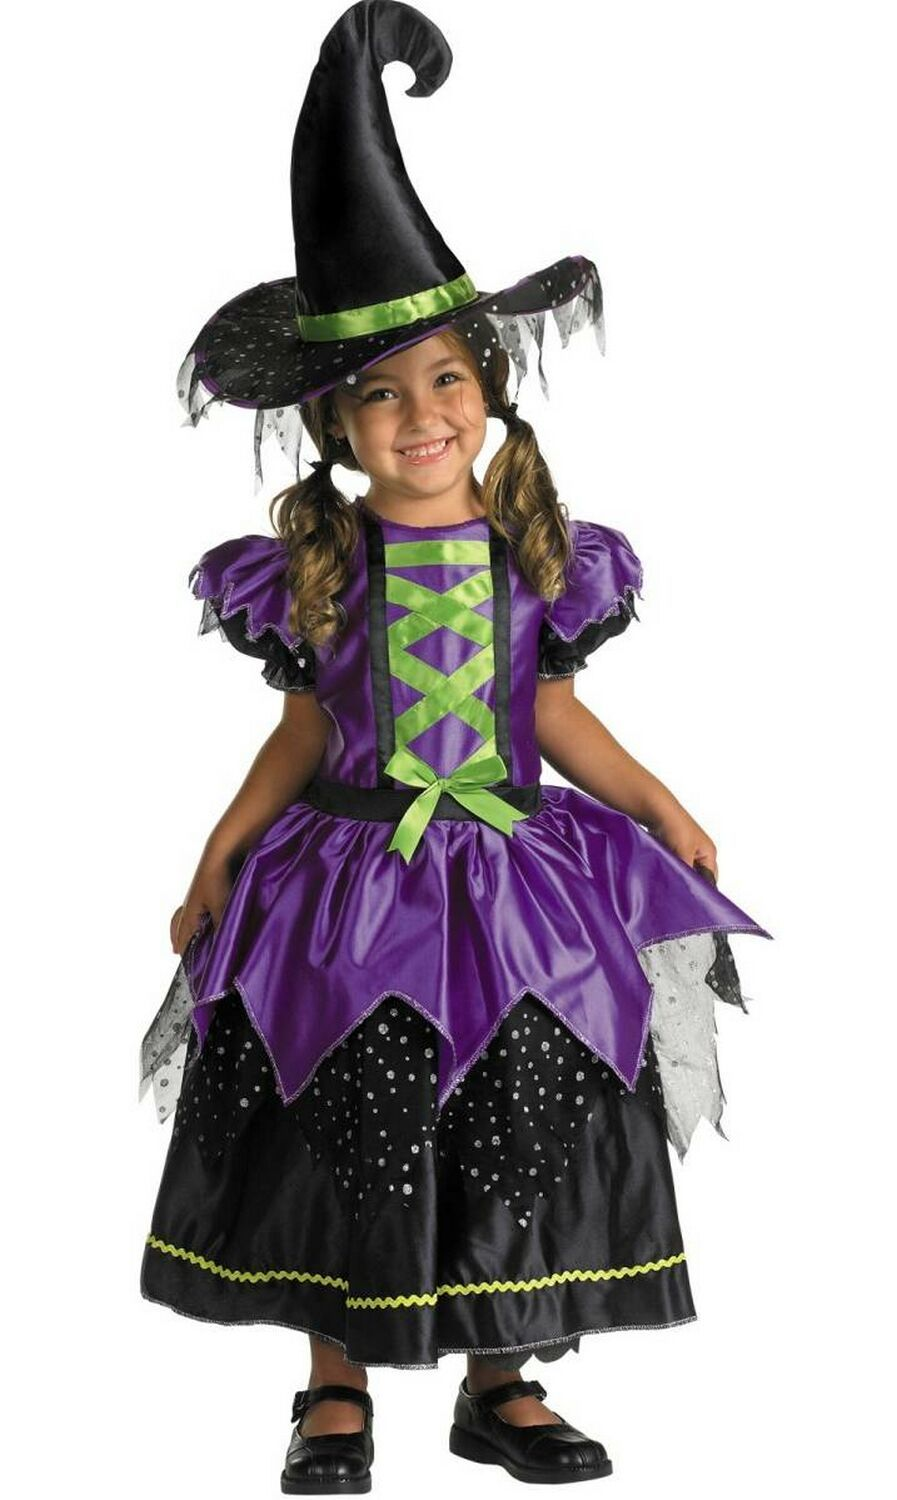 kid+witch+costumes | Kids Magical Witch Costume $31.89 | i heart ...